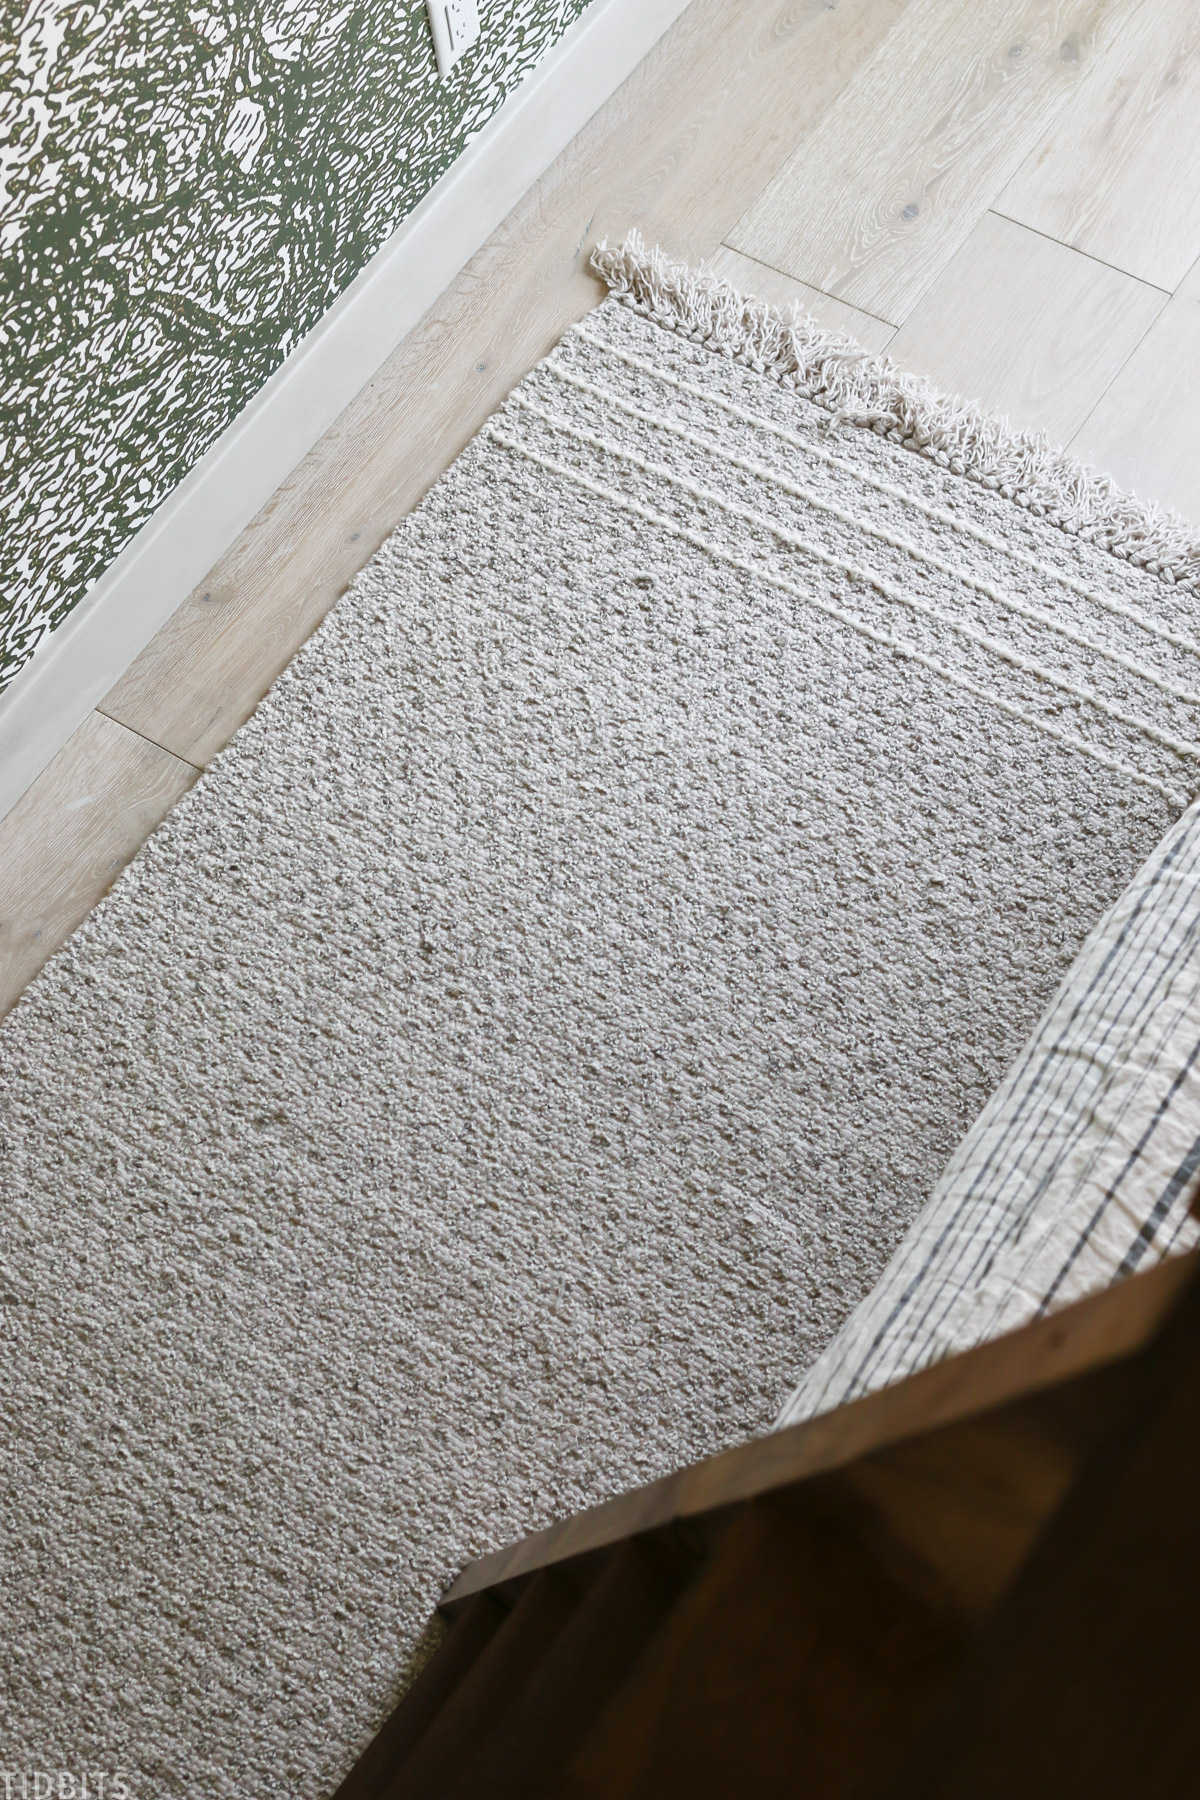 Lazro Fringe Woven Rug laid out on the floor in a kids bedroom